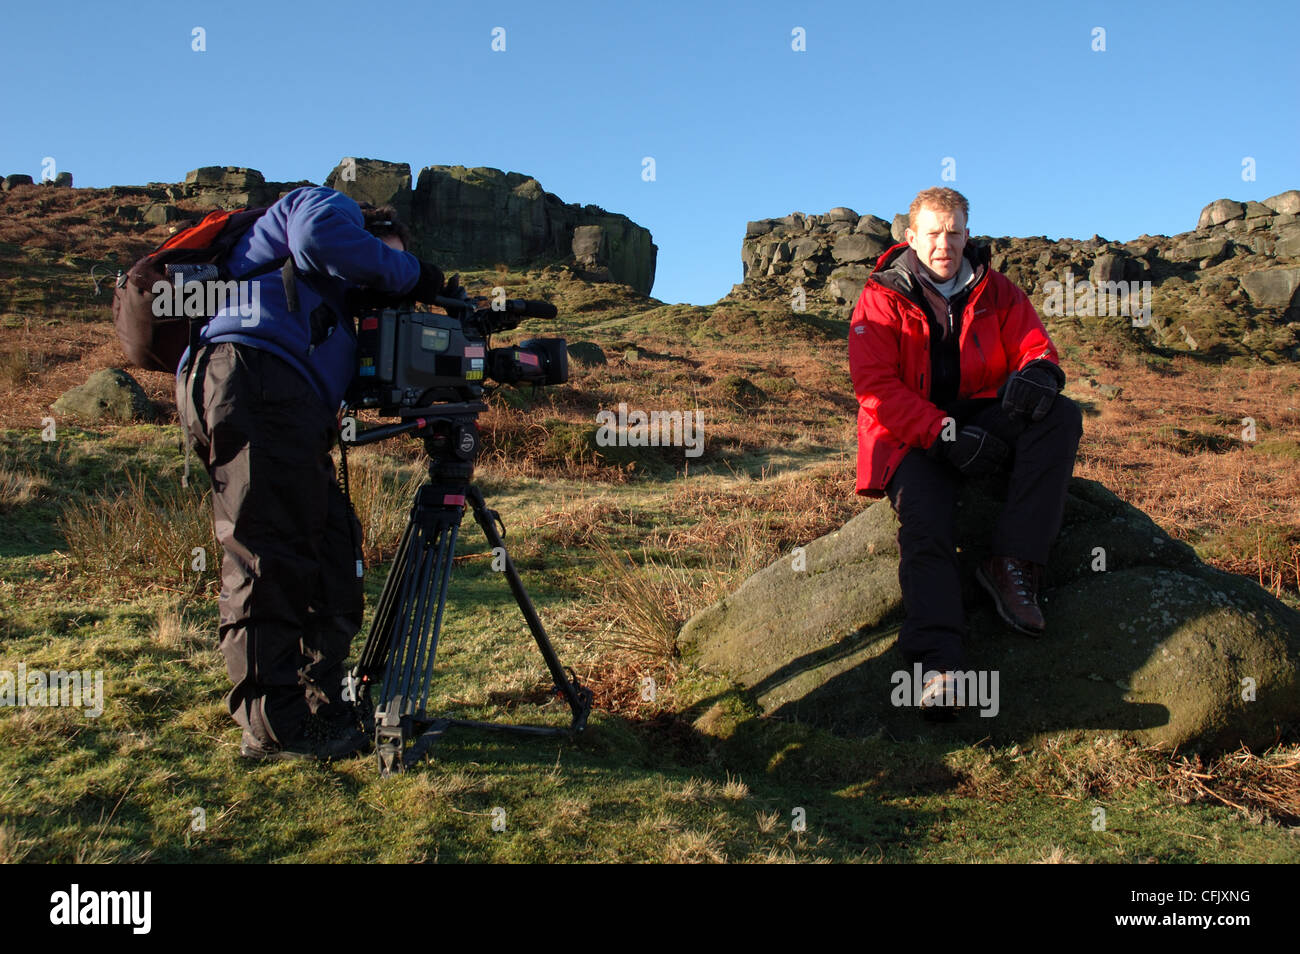 BBC Countryfile presenter Adam Henson and TV crew at Cow and Calf Rocks, Ilkley Moor, Yorkshire - Stock Image